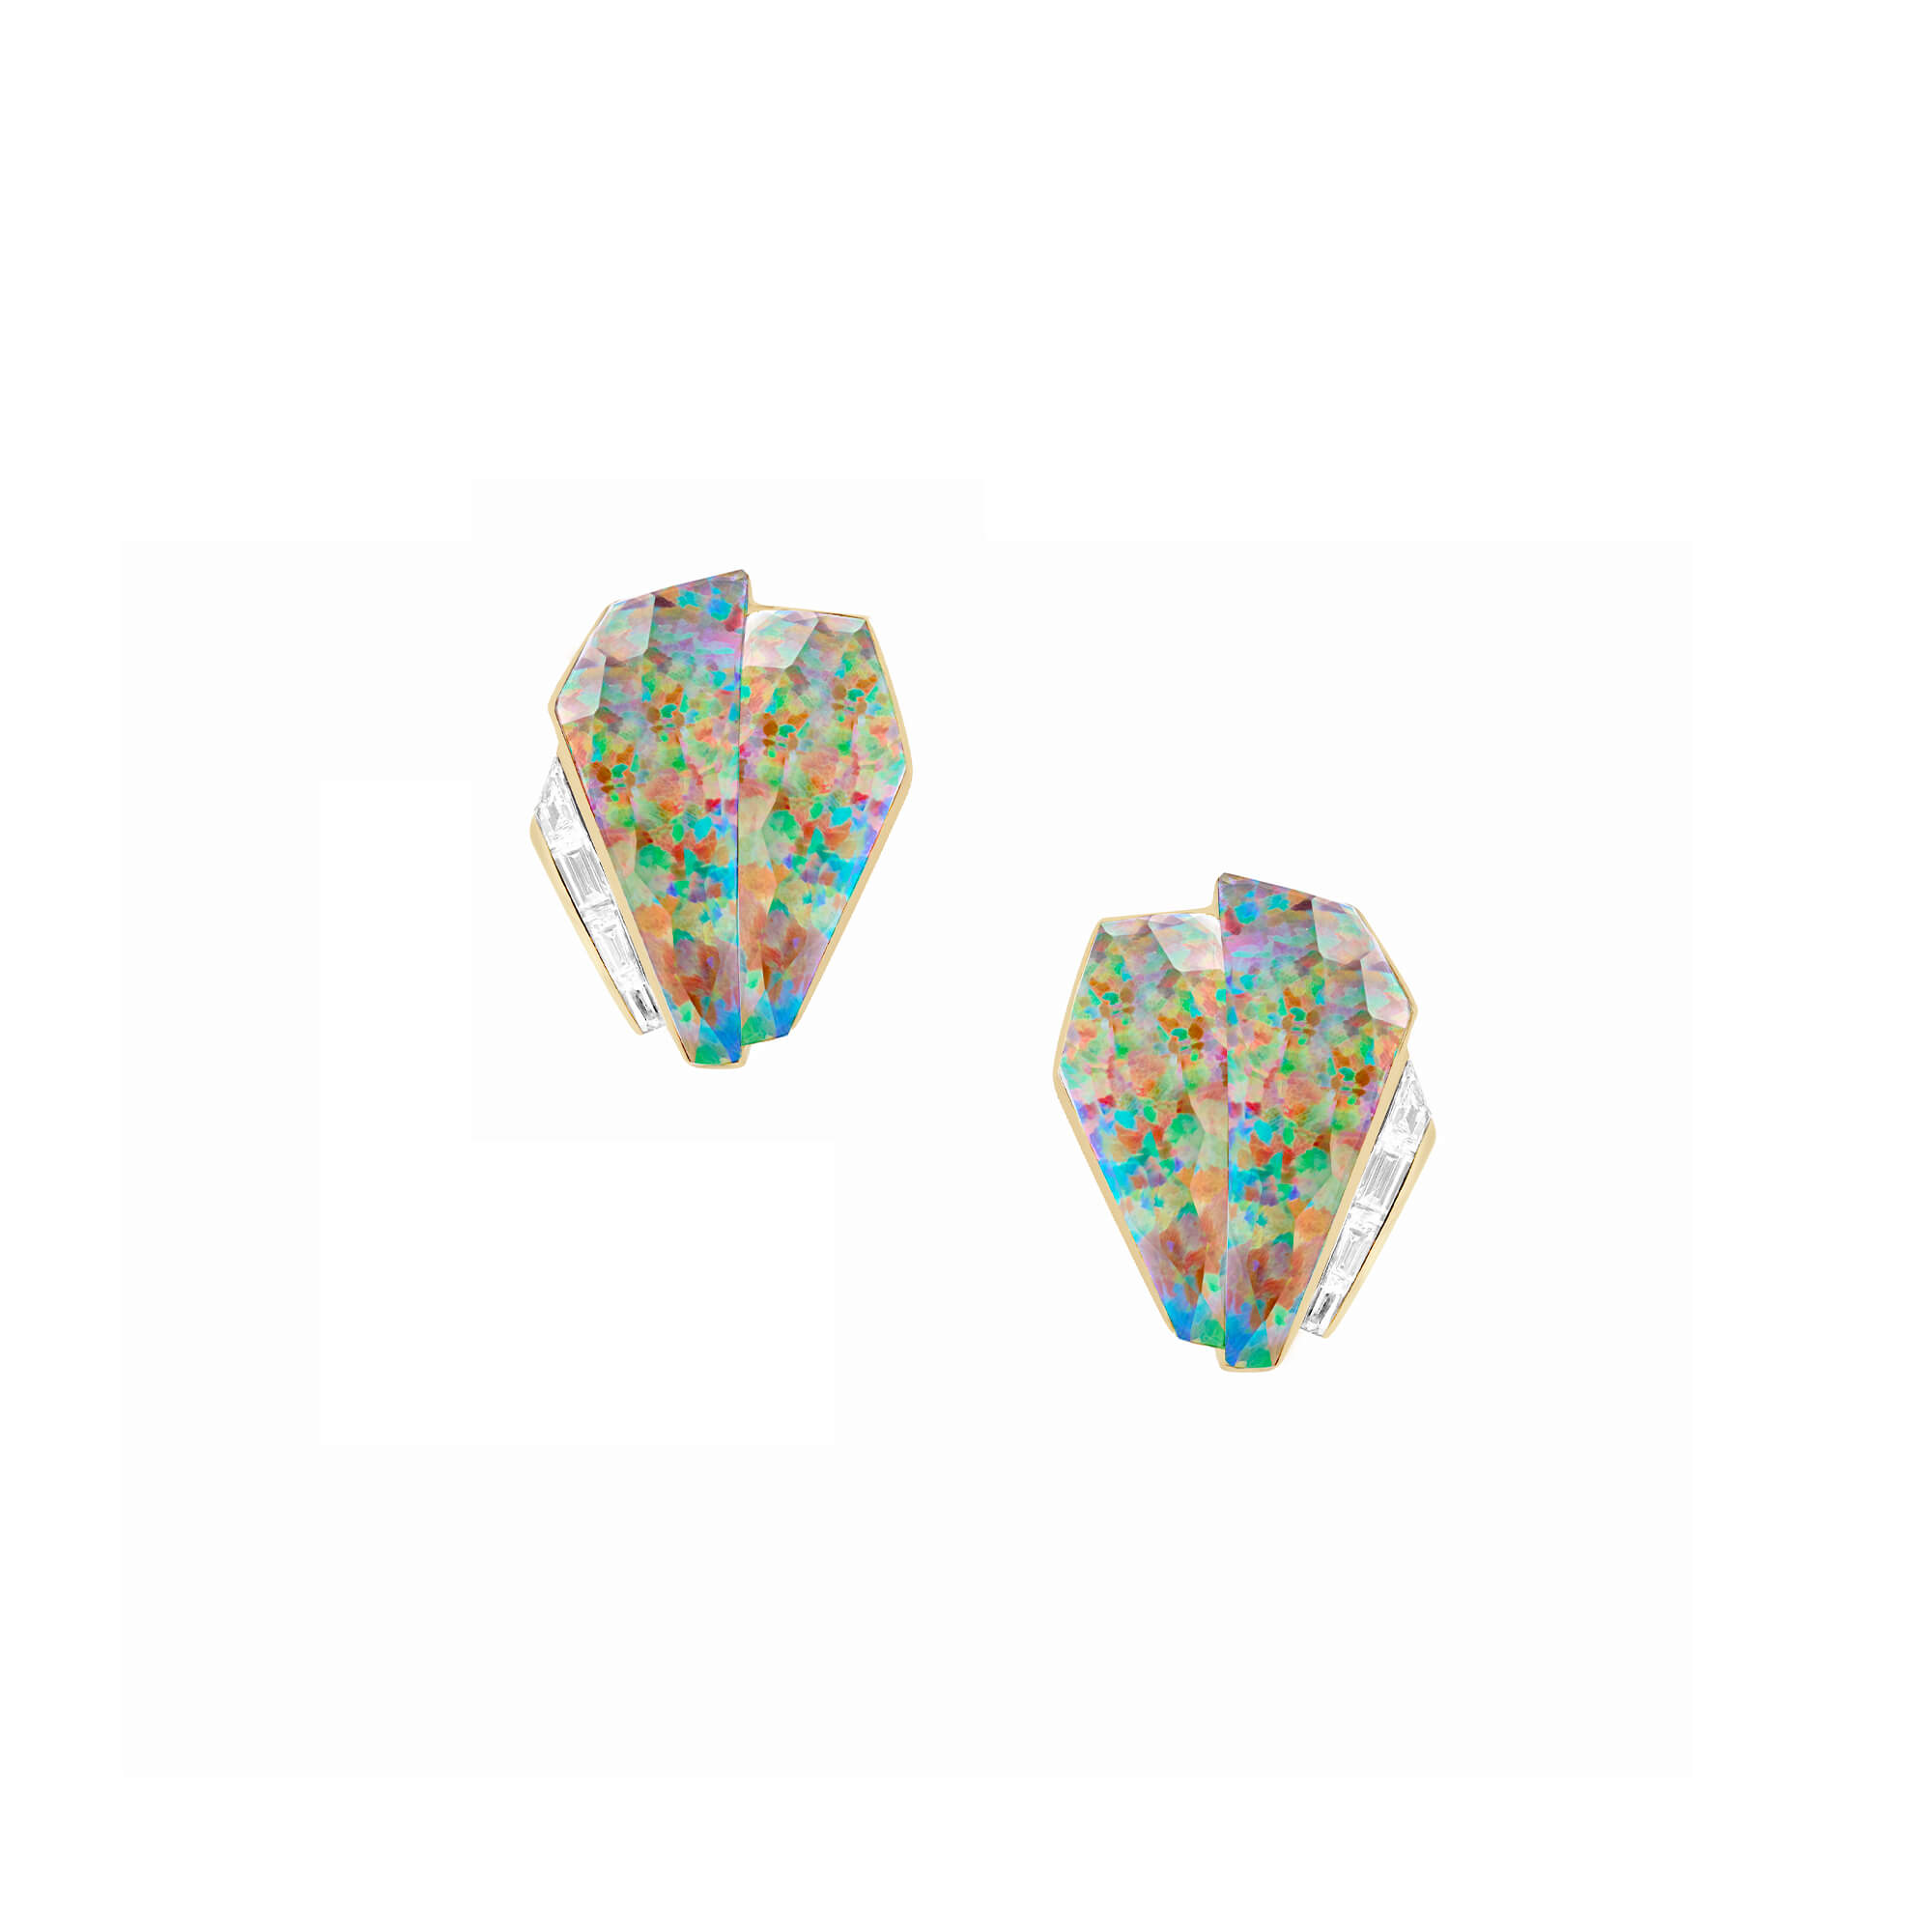 Fire Opalescent Crystal Haze Cuff Earrings | CH₂